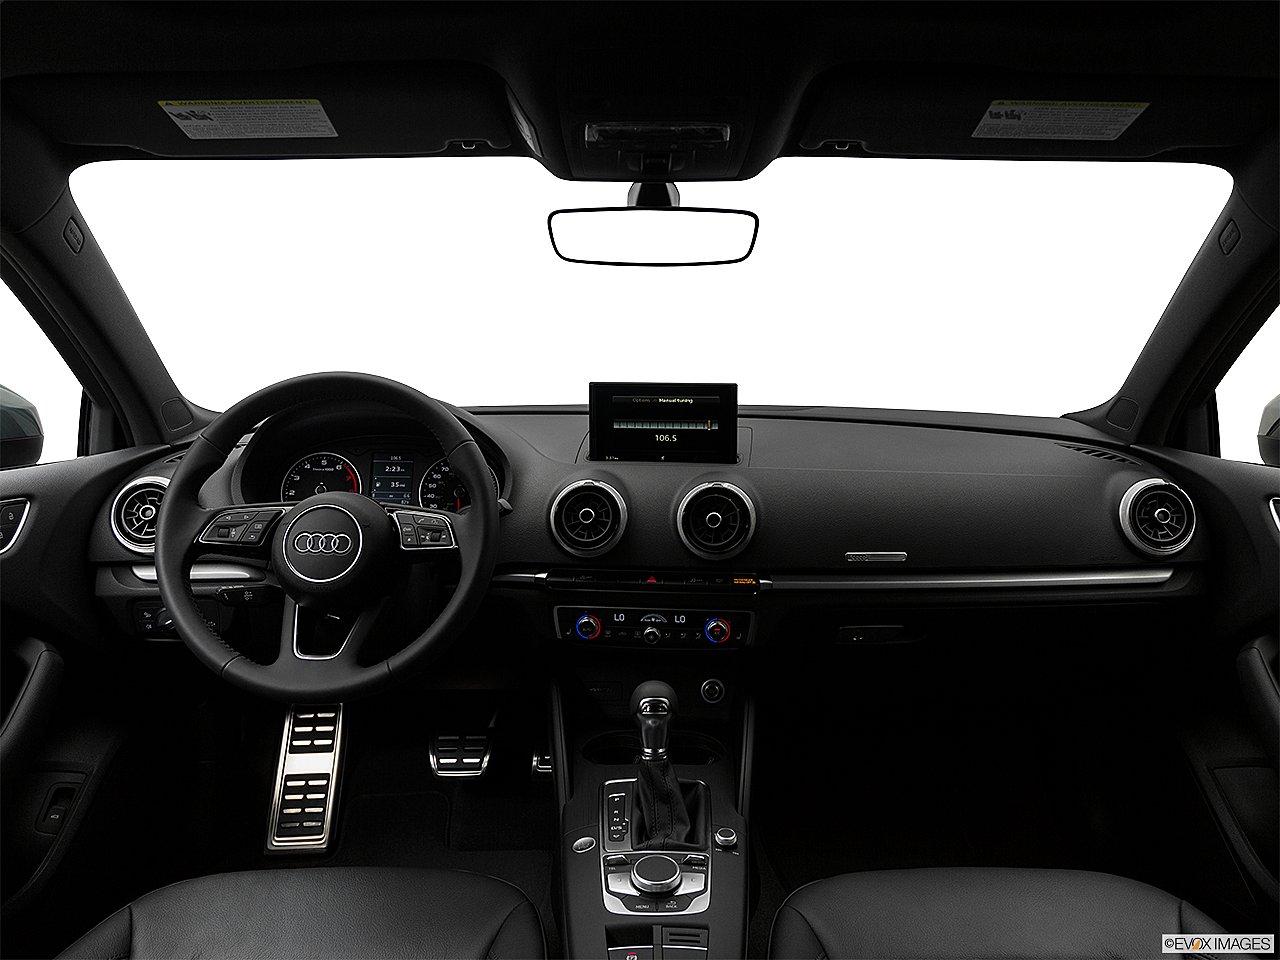 2018 Audi A3 Premium 2.0 TFSI, centered wide dash shot